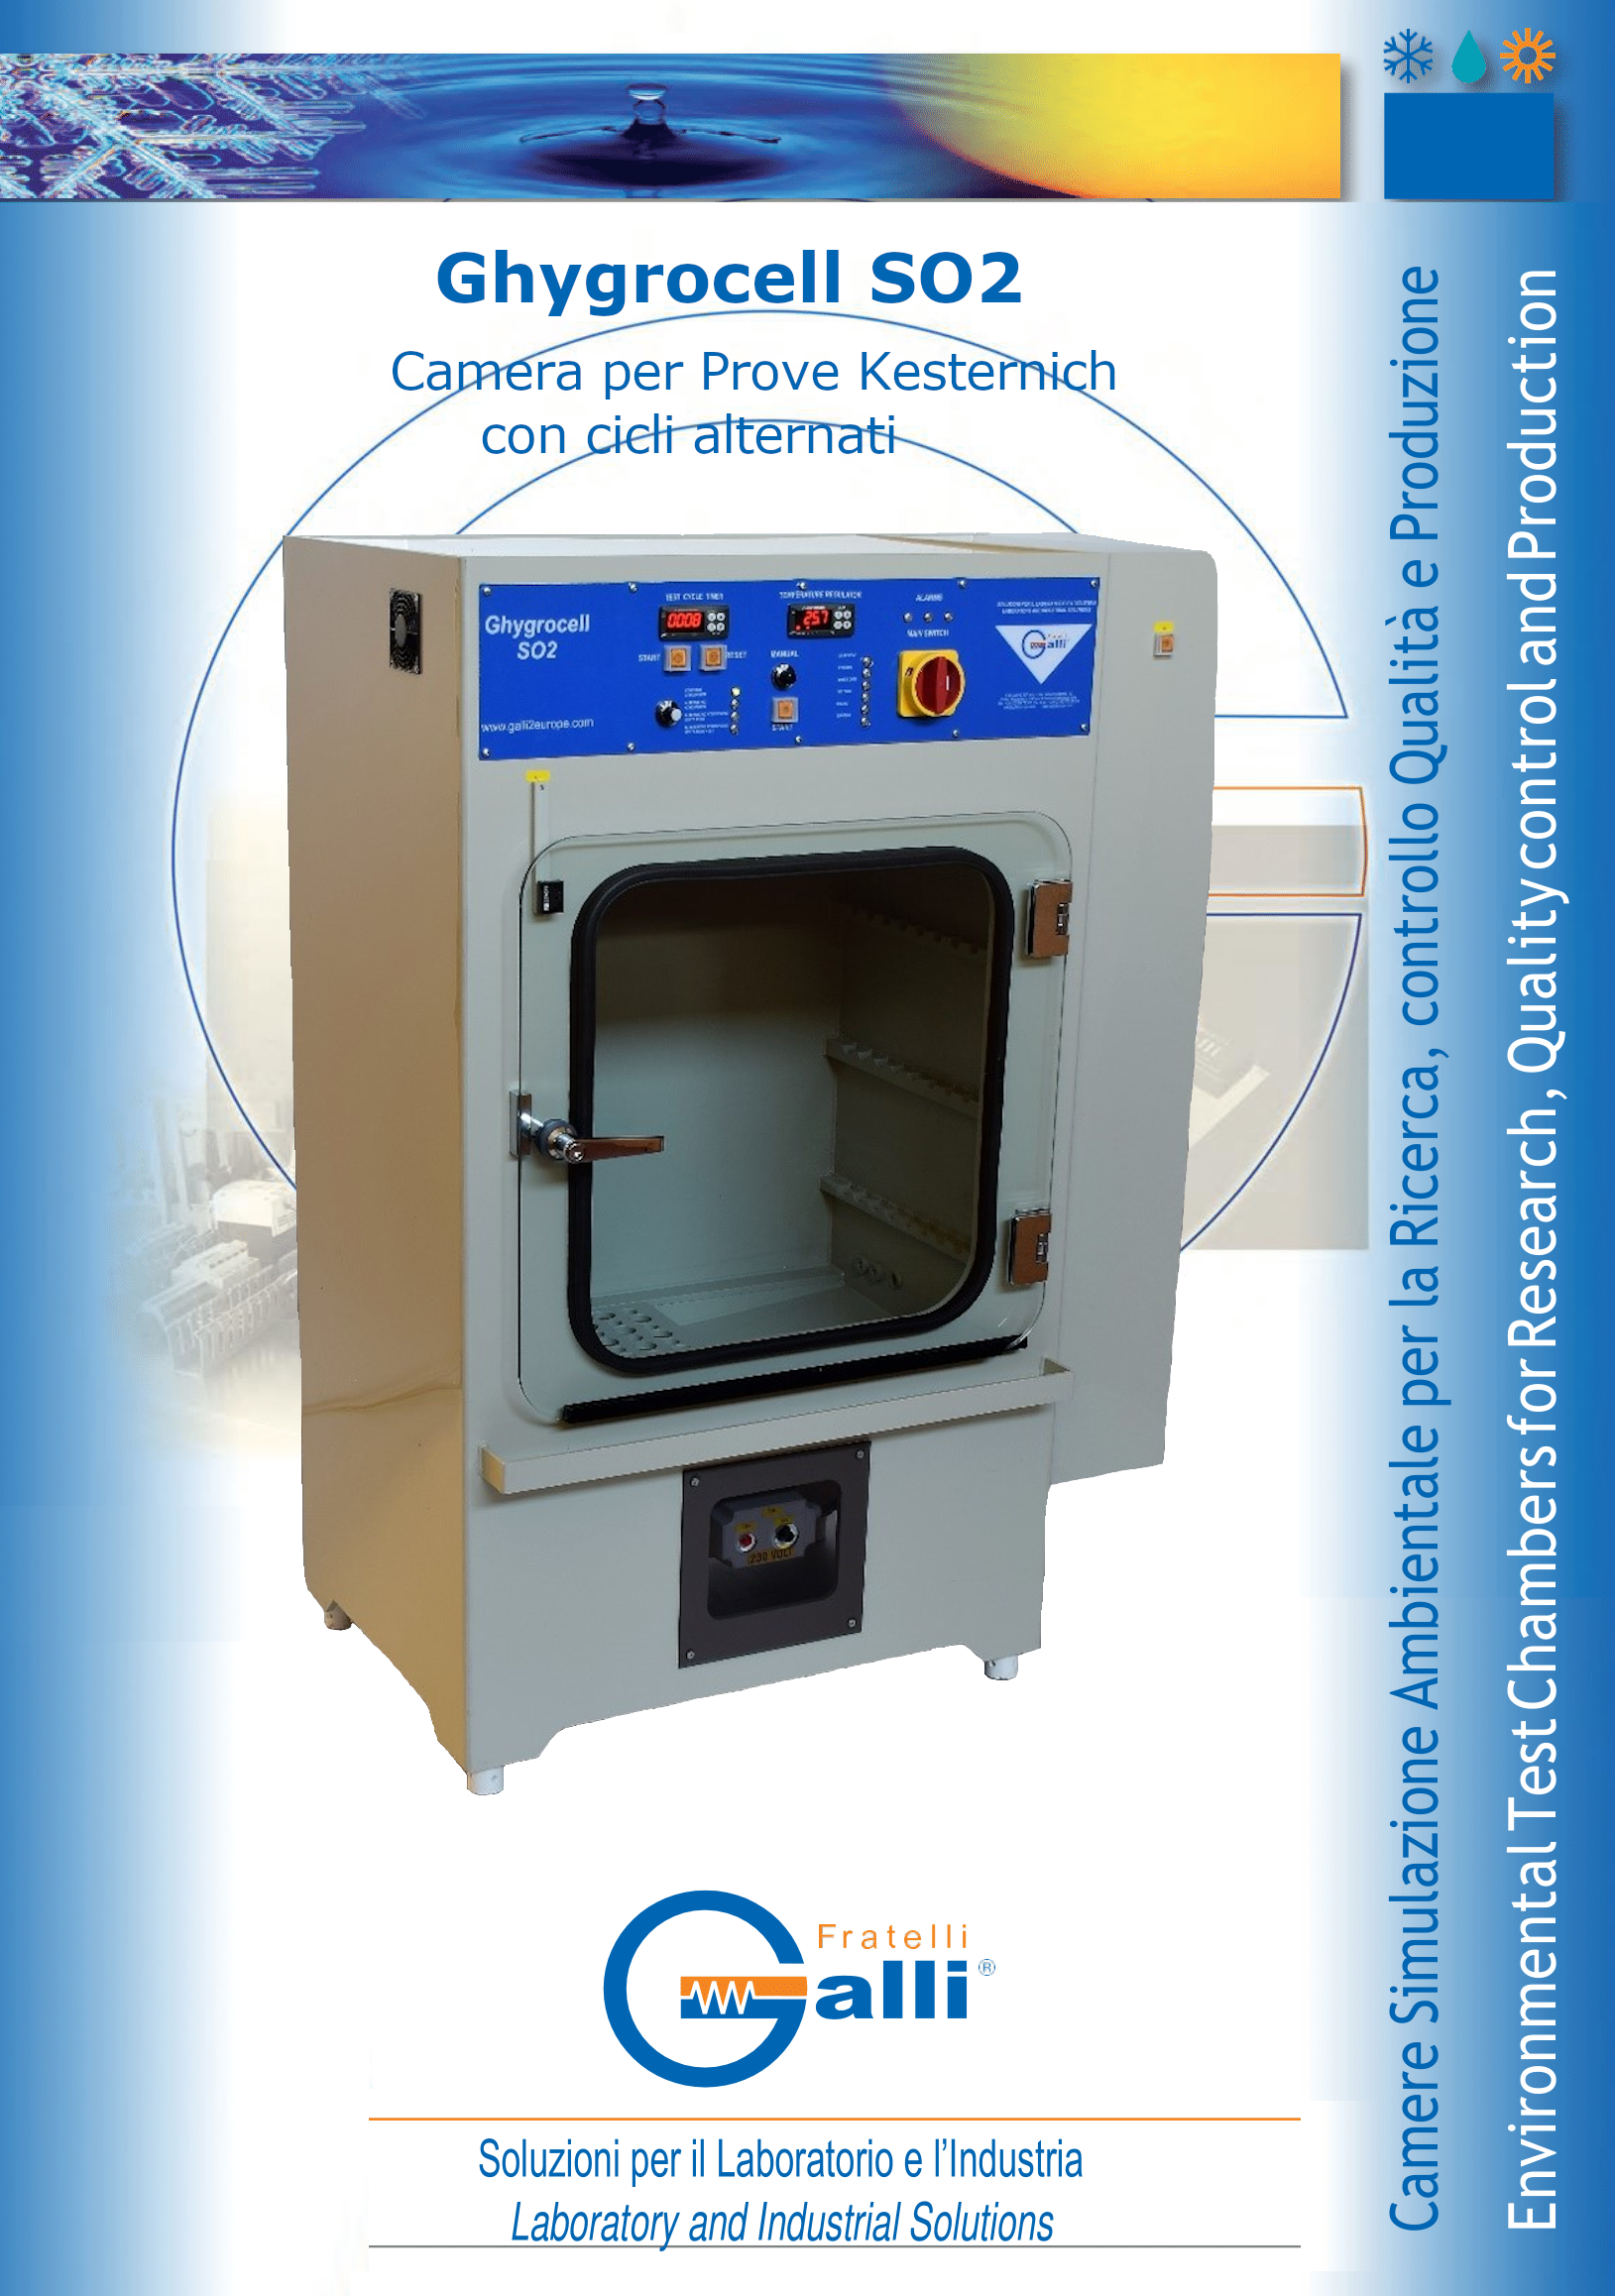 Galli-Thermotron-atss30-thermal shock-climatic chamber-camera climatica